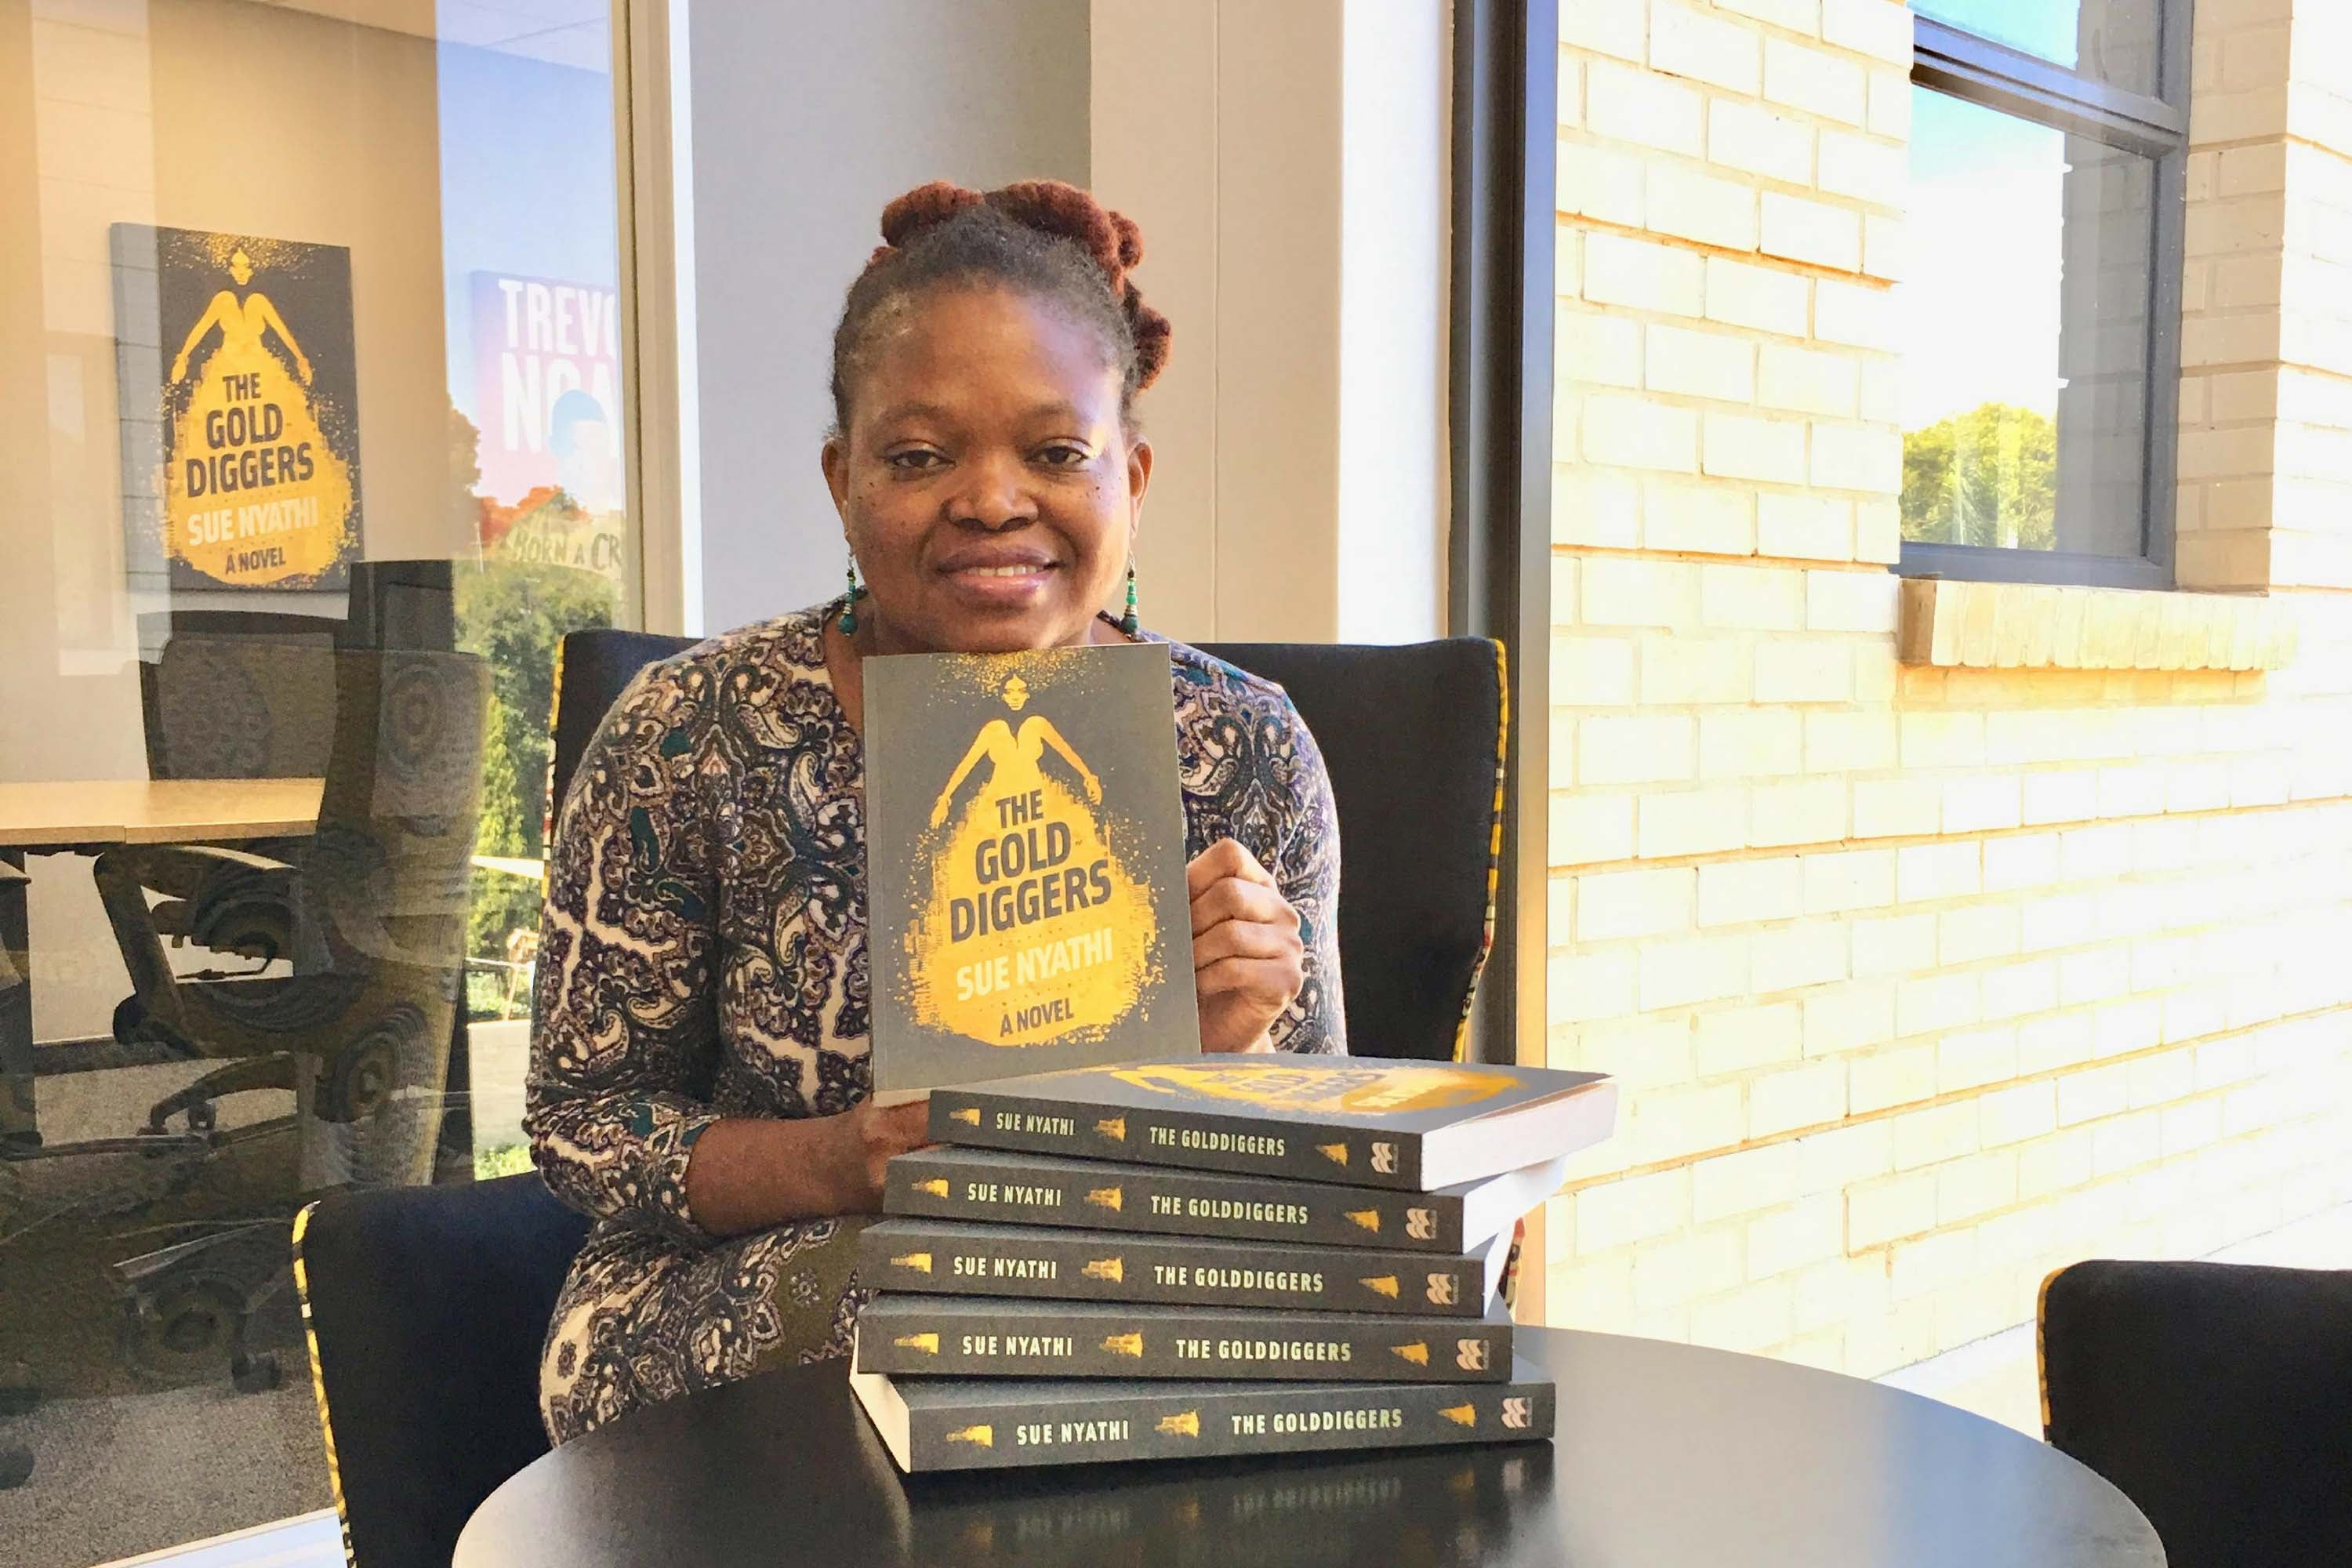 Photo of Sue Nyathi sat a table with copies of her book the The Gold diggers